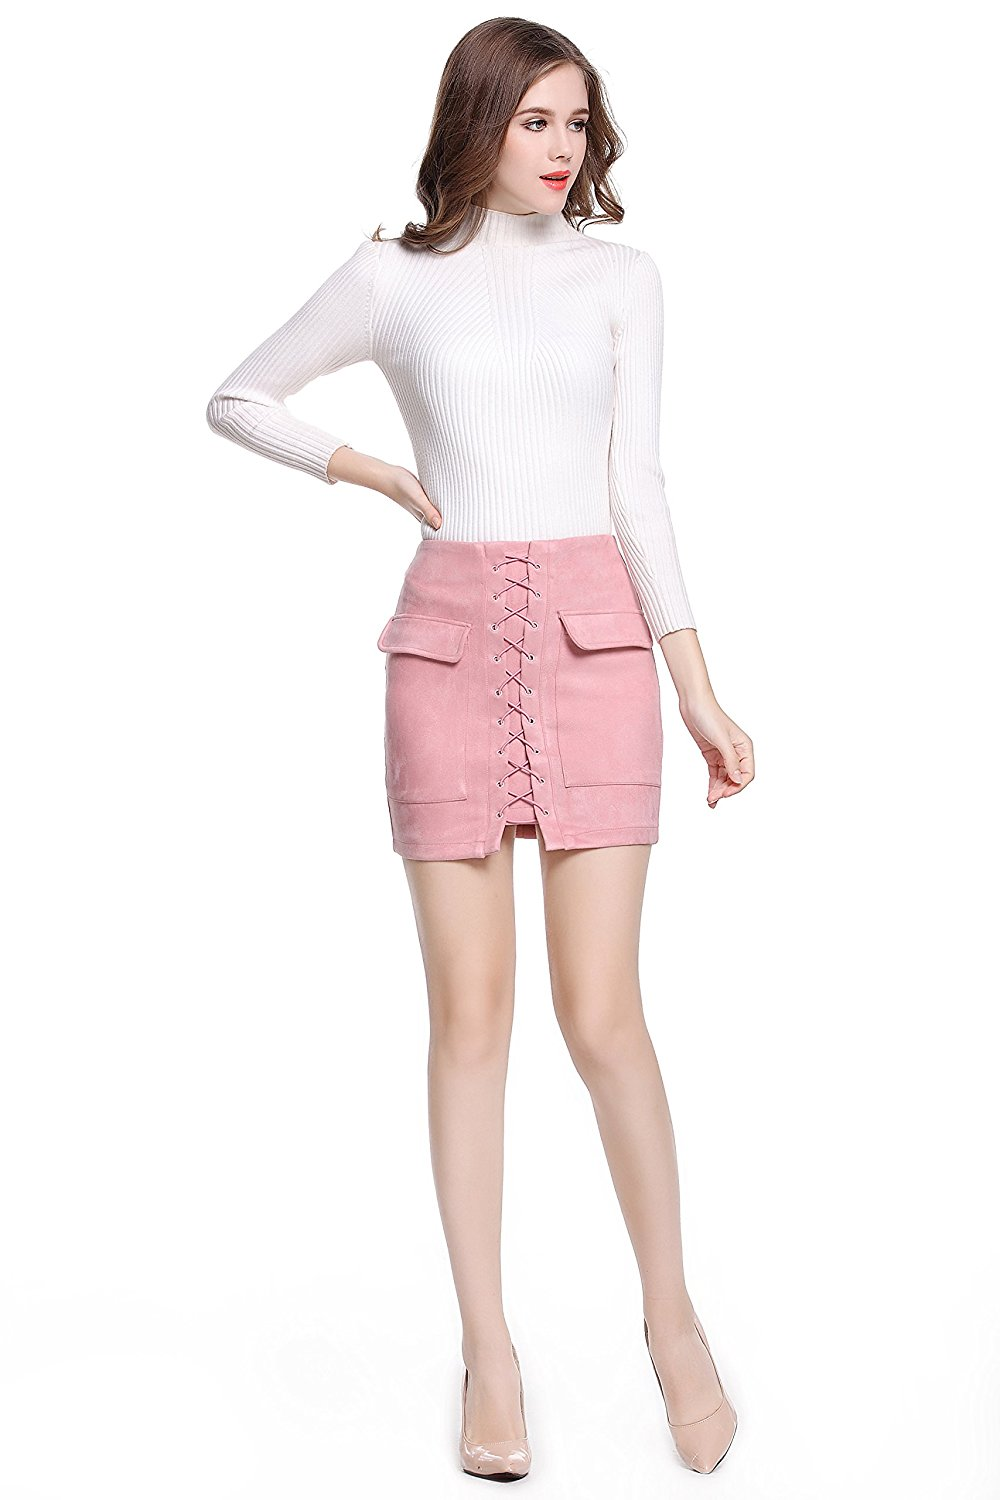 Women's Vintage Tight Suede Lace Up High Waist Skirts External Pocket A-line Pencil Autumn Winter Thick Preppy Mini Skirts at Amazon Women's Clothing store: